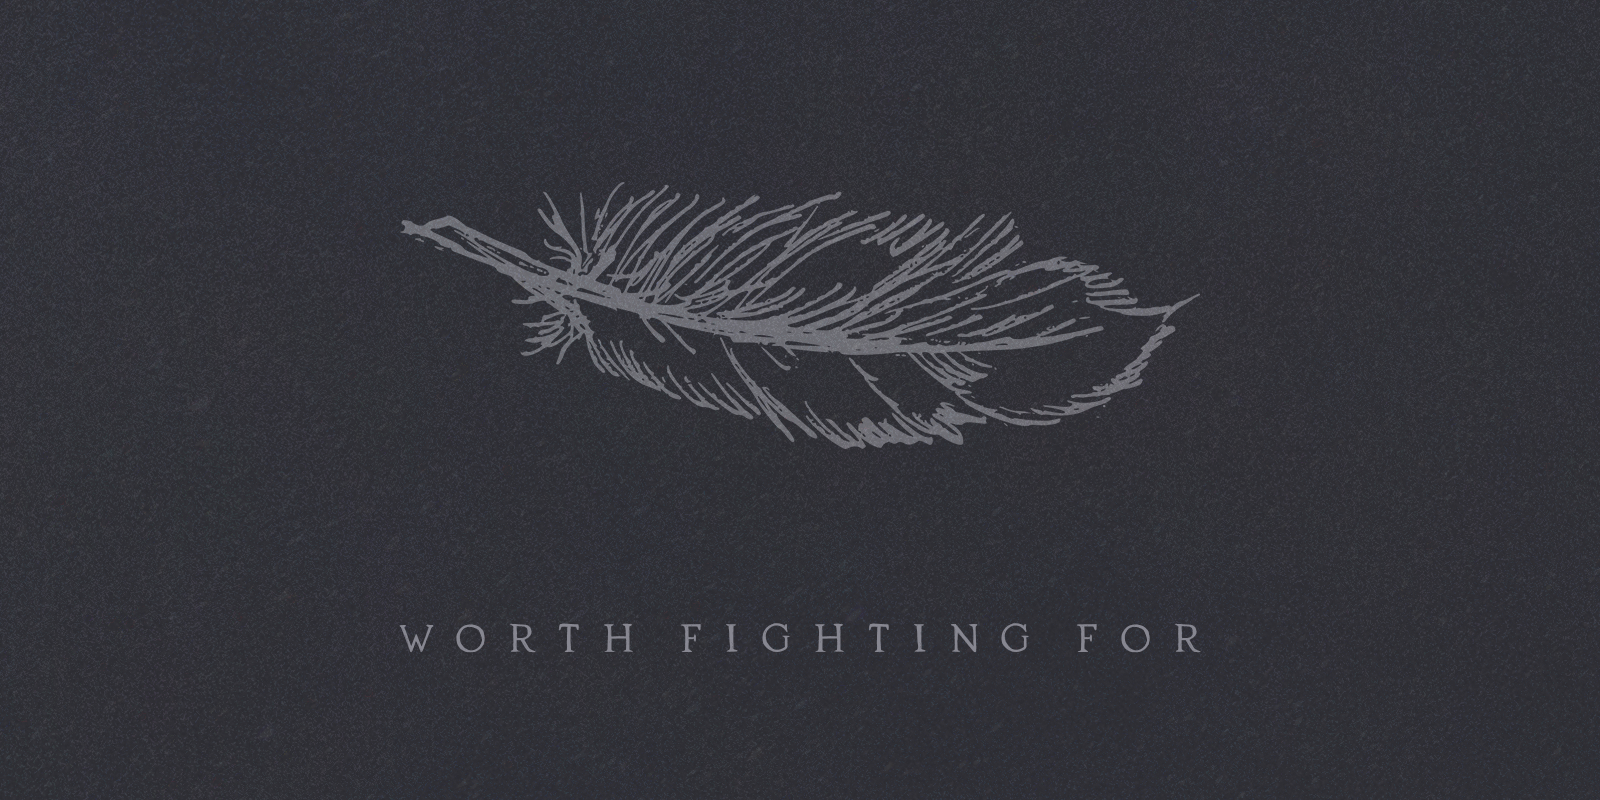 WORTH FIGHTING FOR.